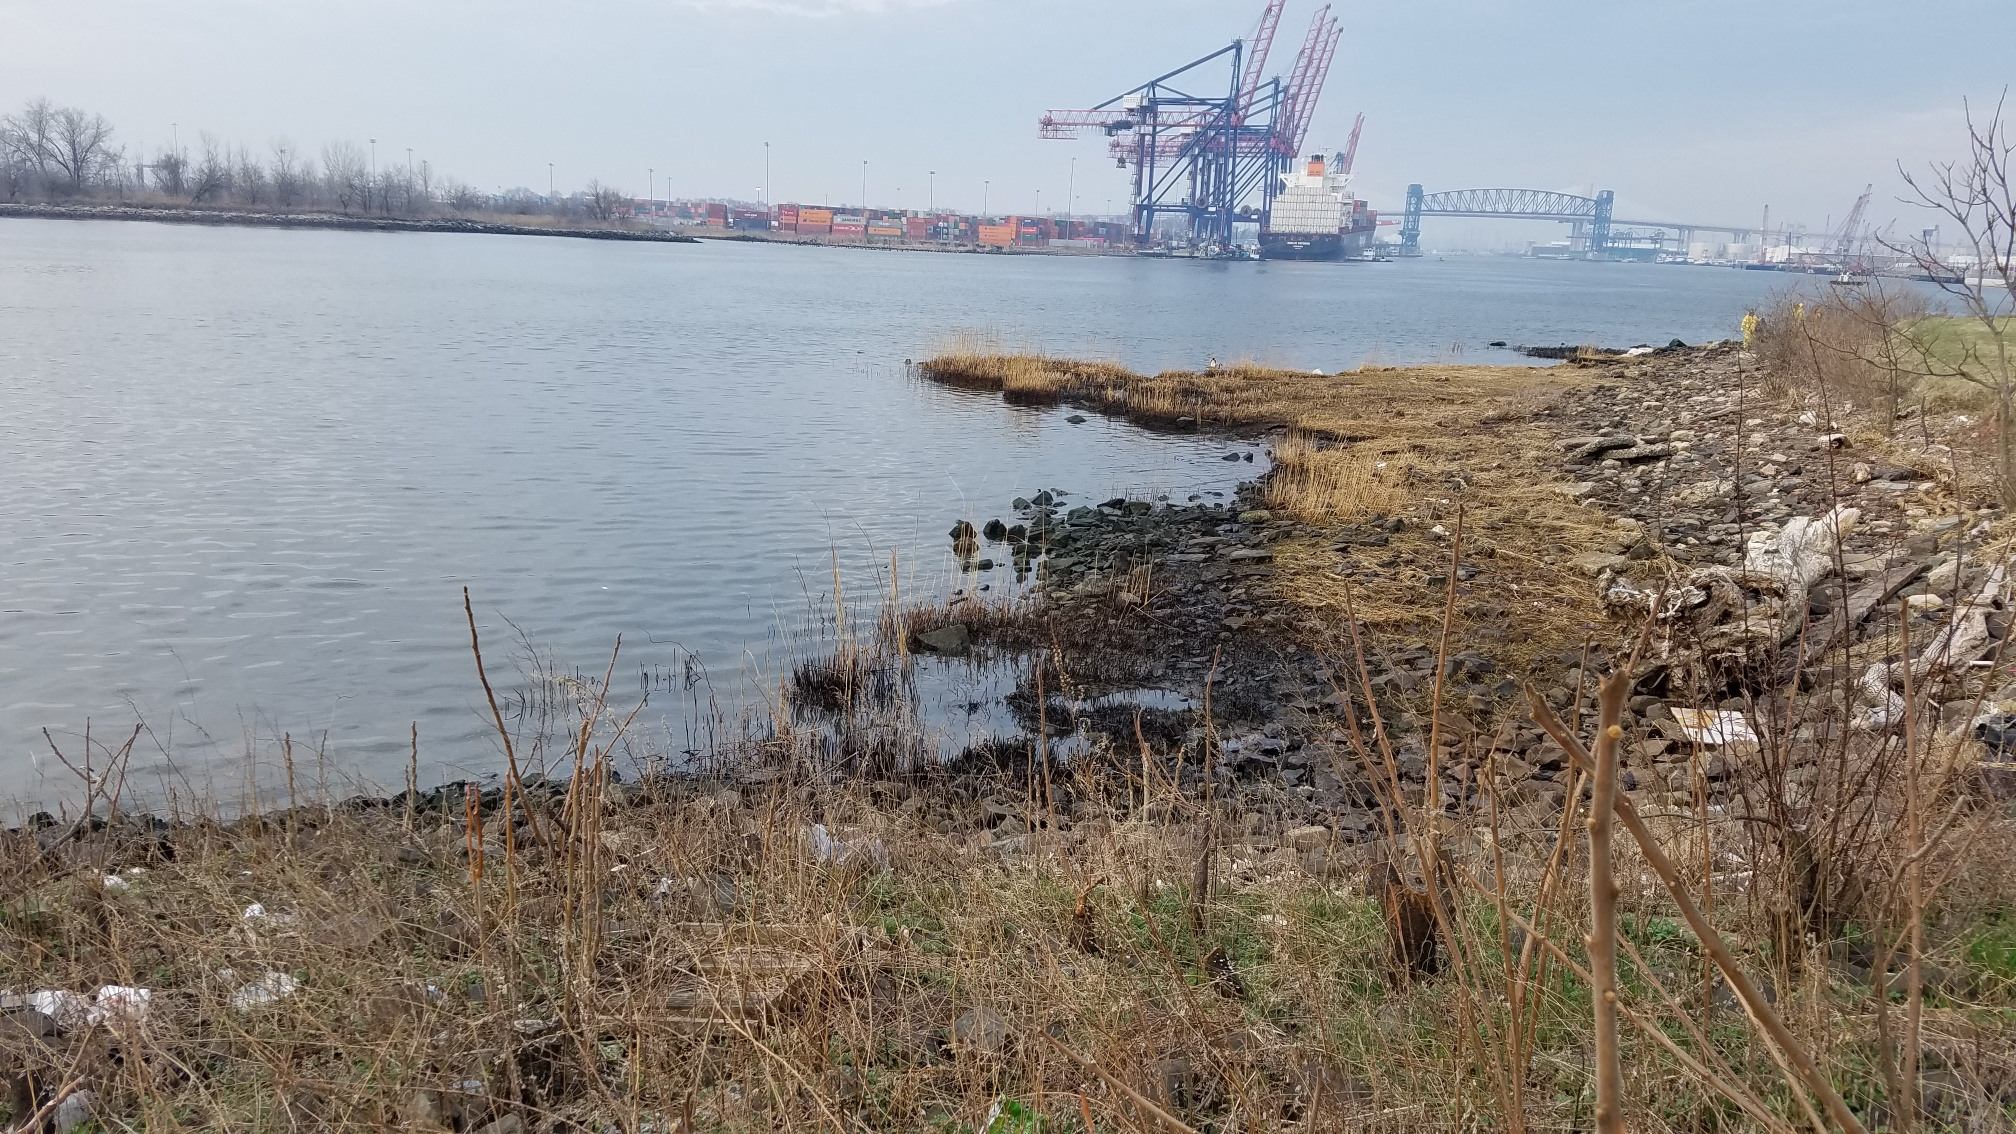 An oiled shoreline with industrial structures in the background.